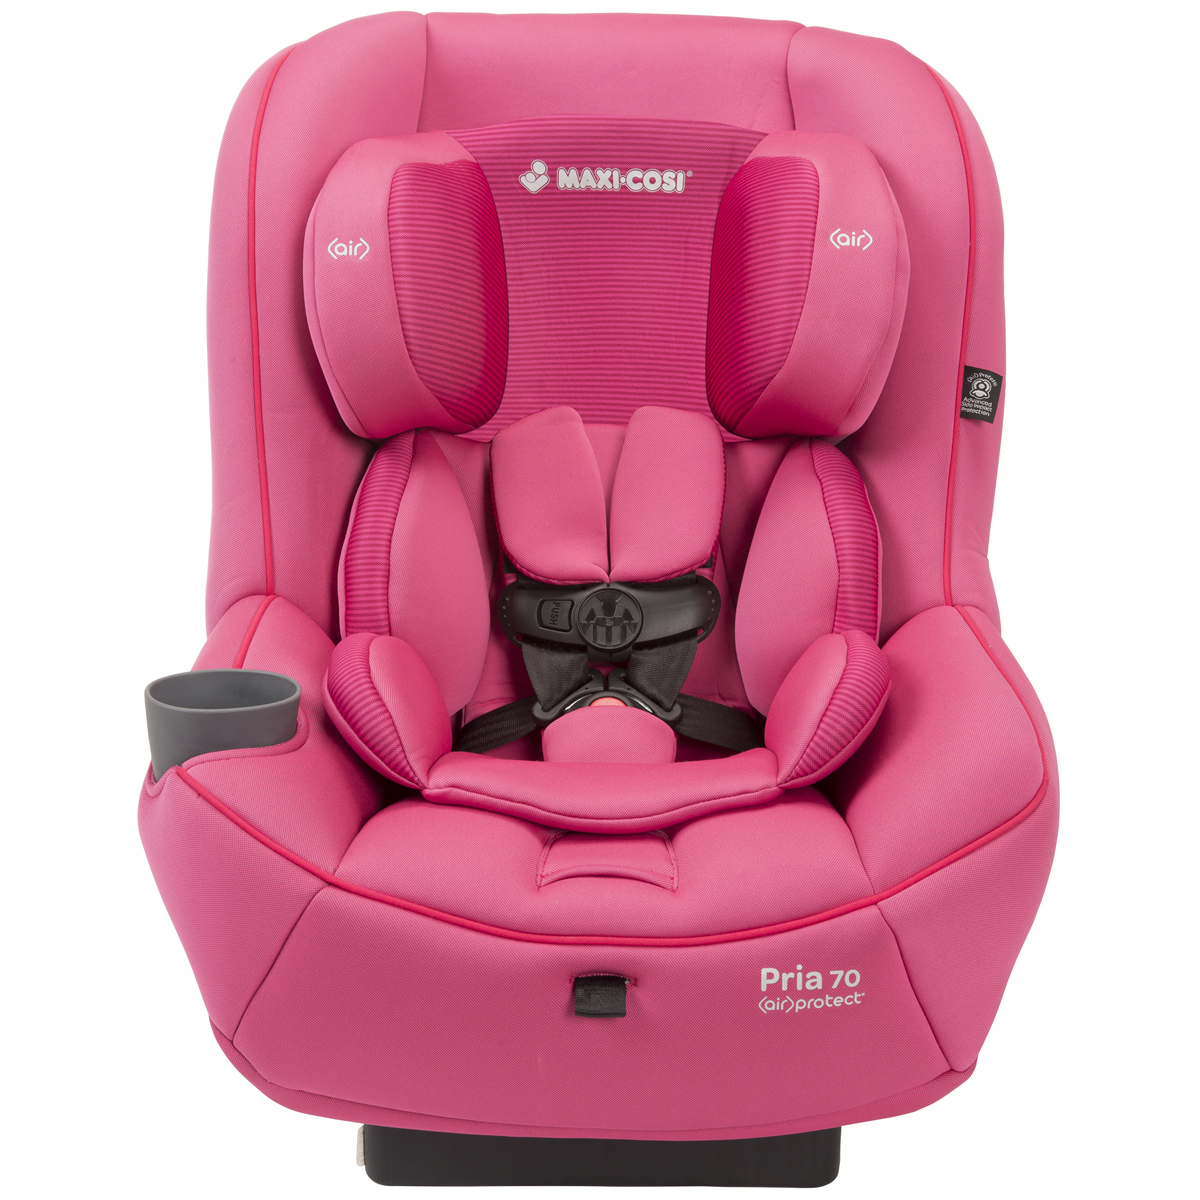 MAXI-COSI Pria 70 Convertible Car Seat - Pink Berry